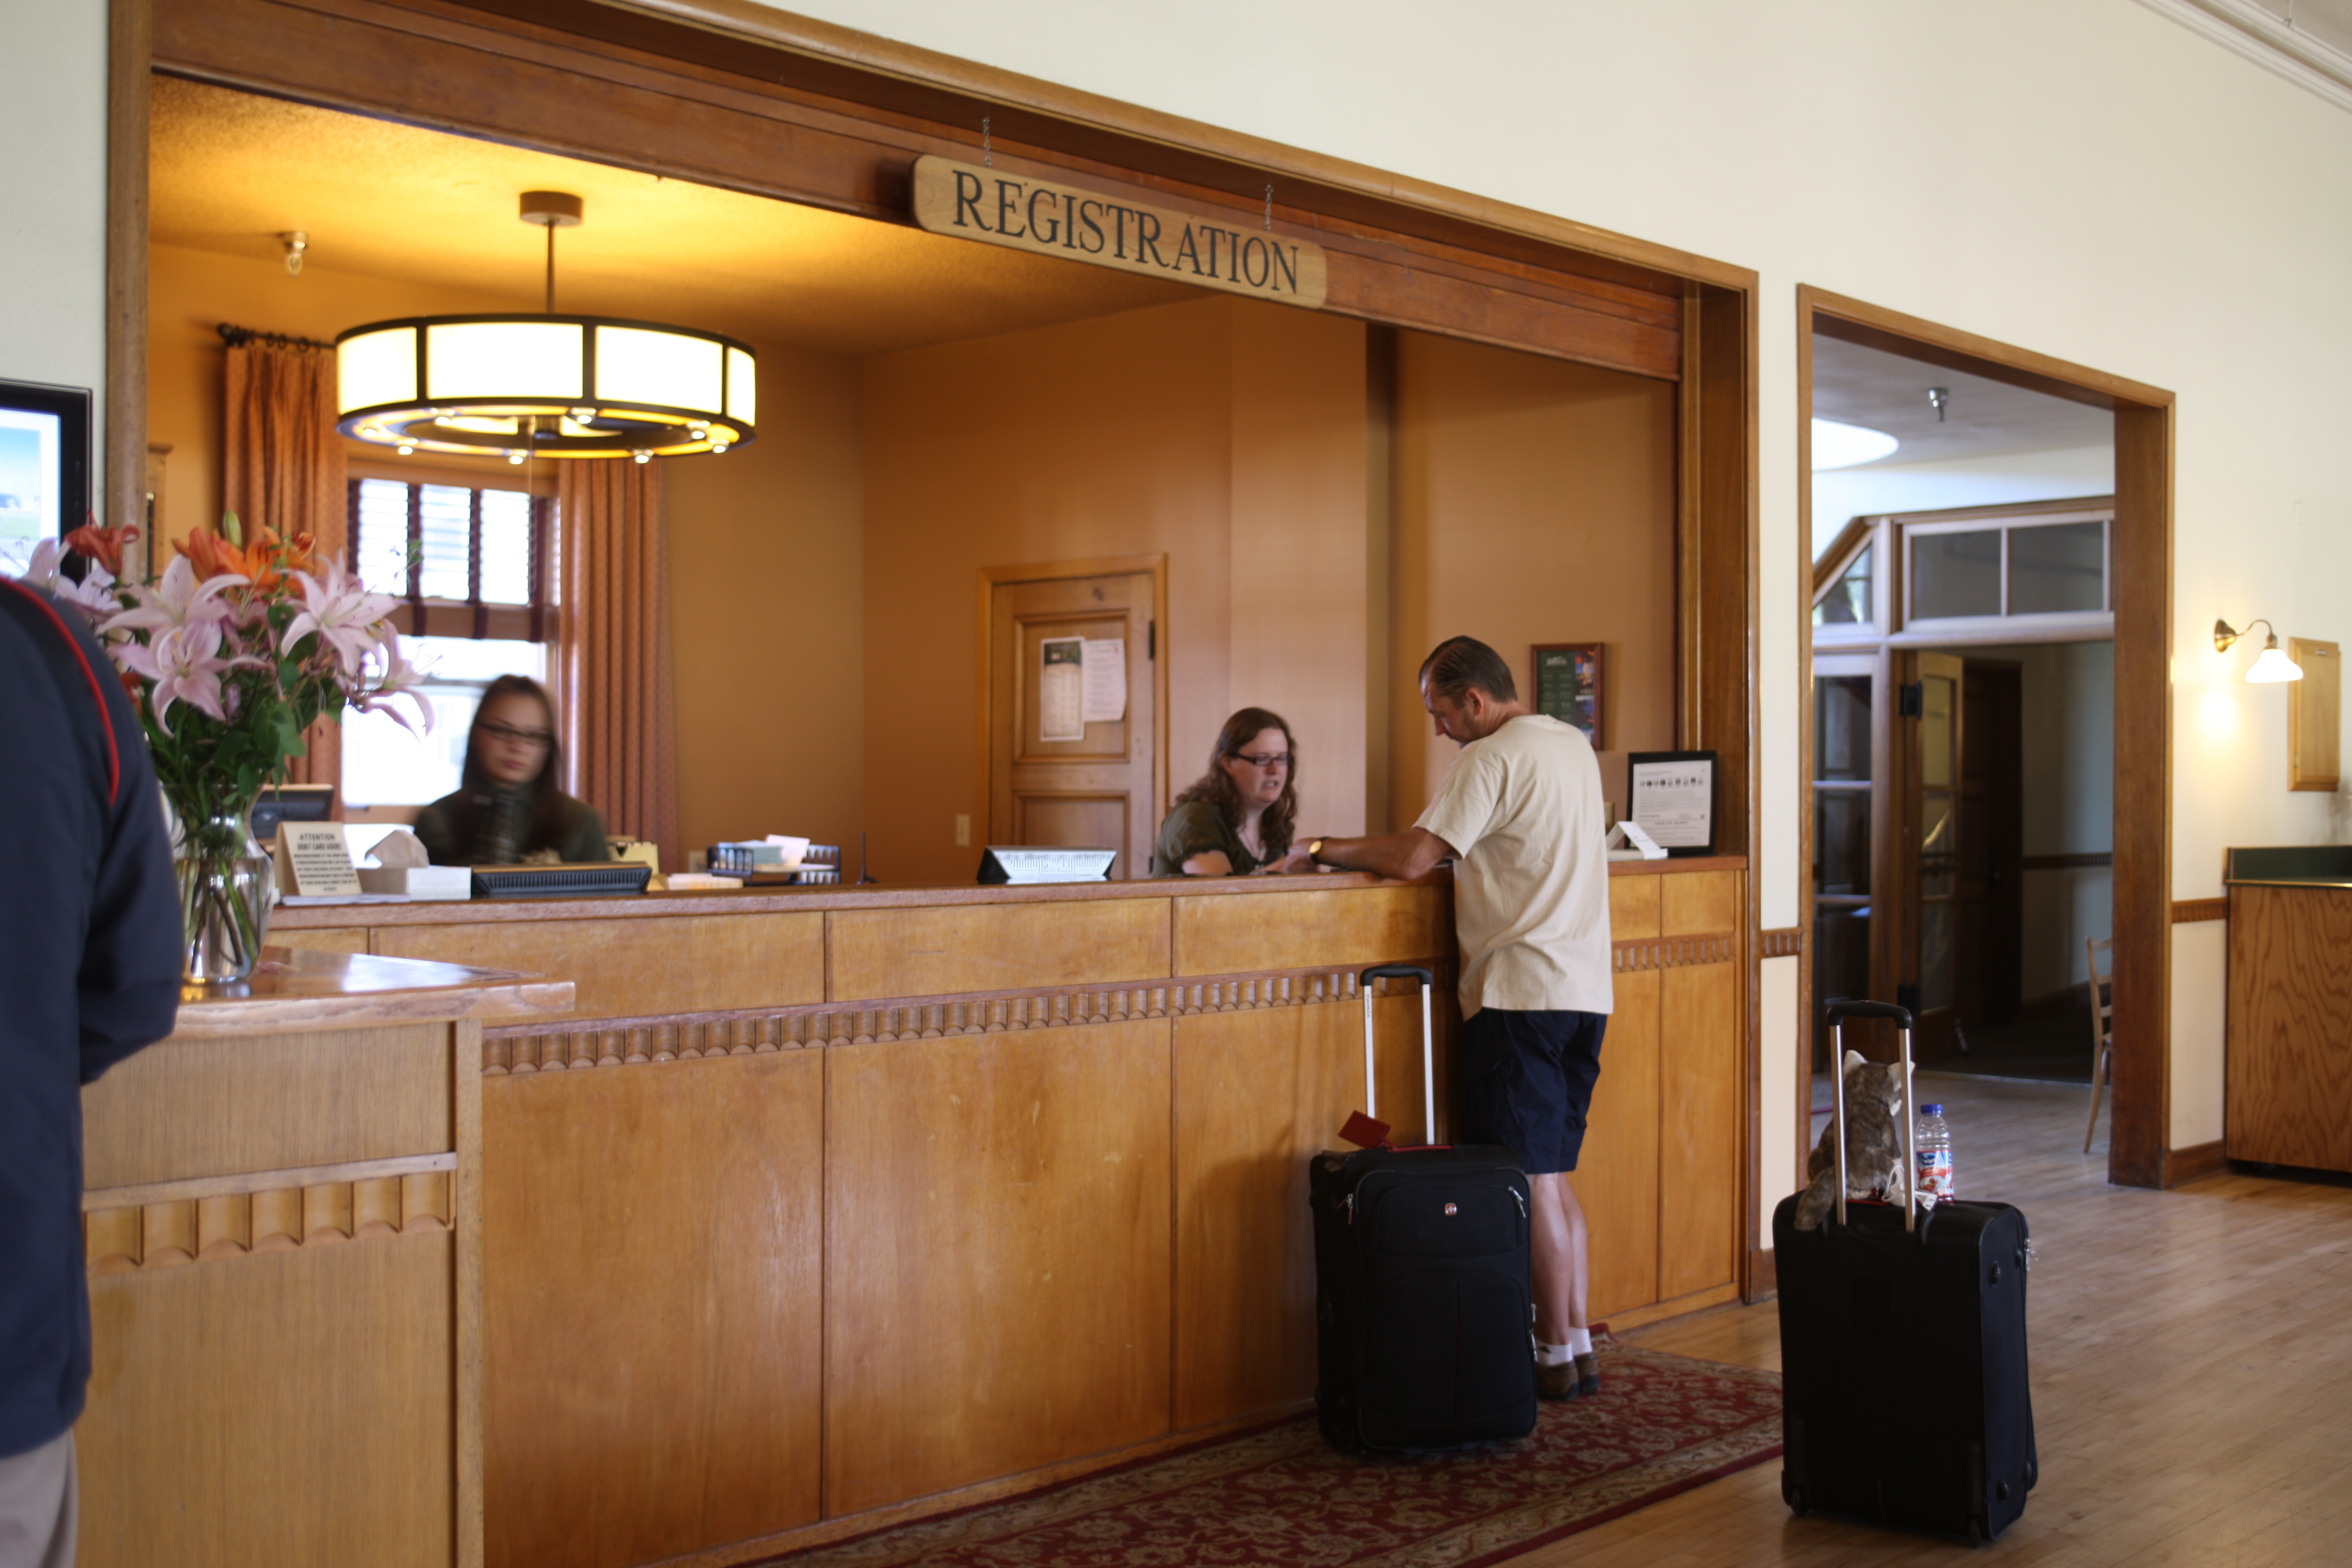 Hotel Lobby Welcome Desk Corian Built RT 137 Shop For Sale In